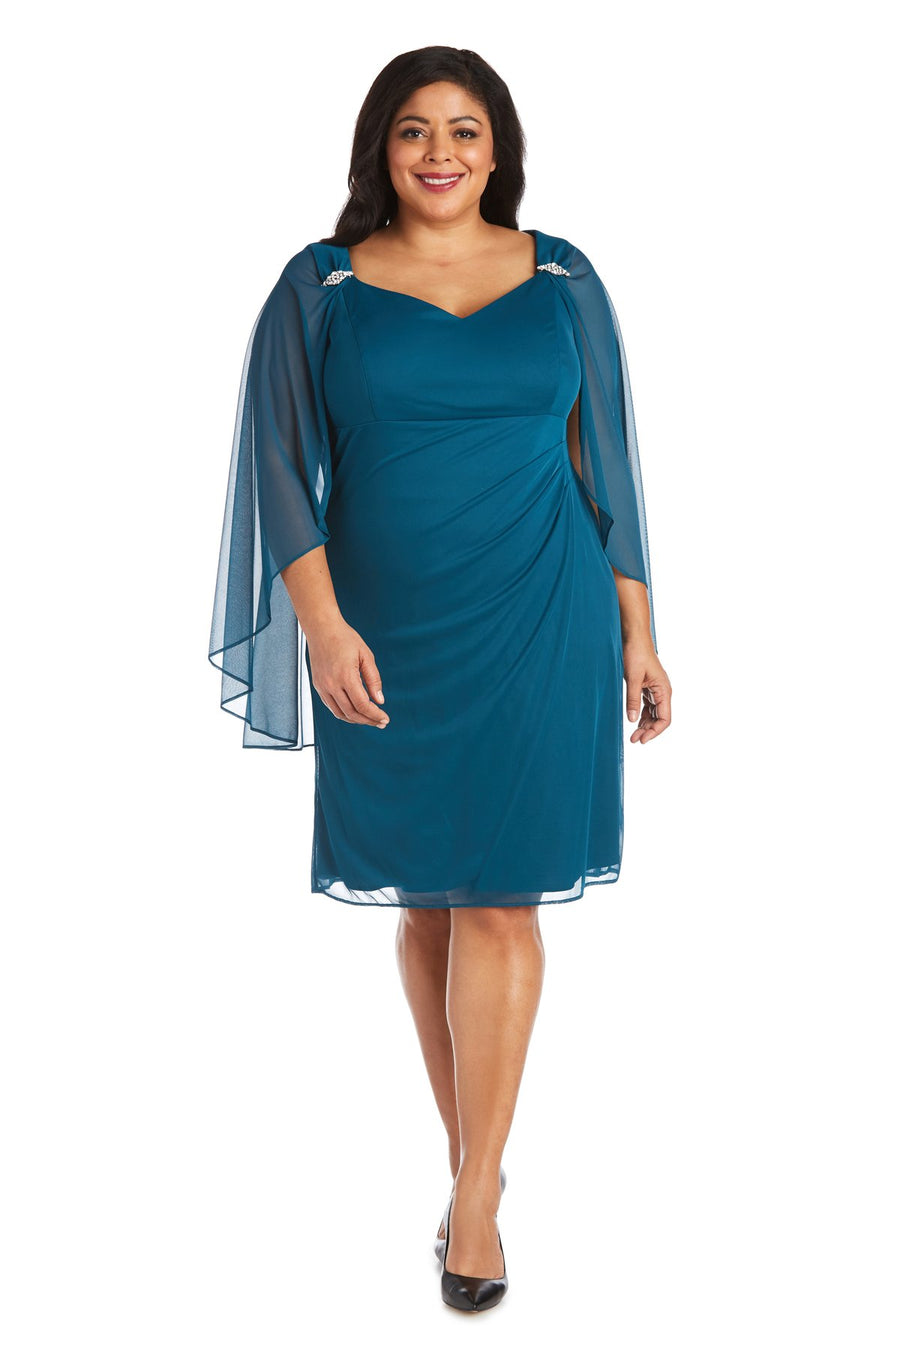 Short Empire Sweetheart Neck Dress with Sheer Cape - Plus Peacock